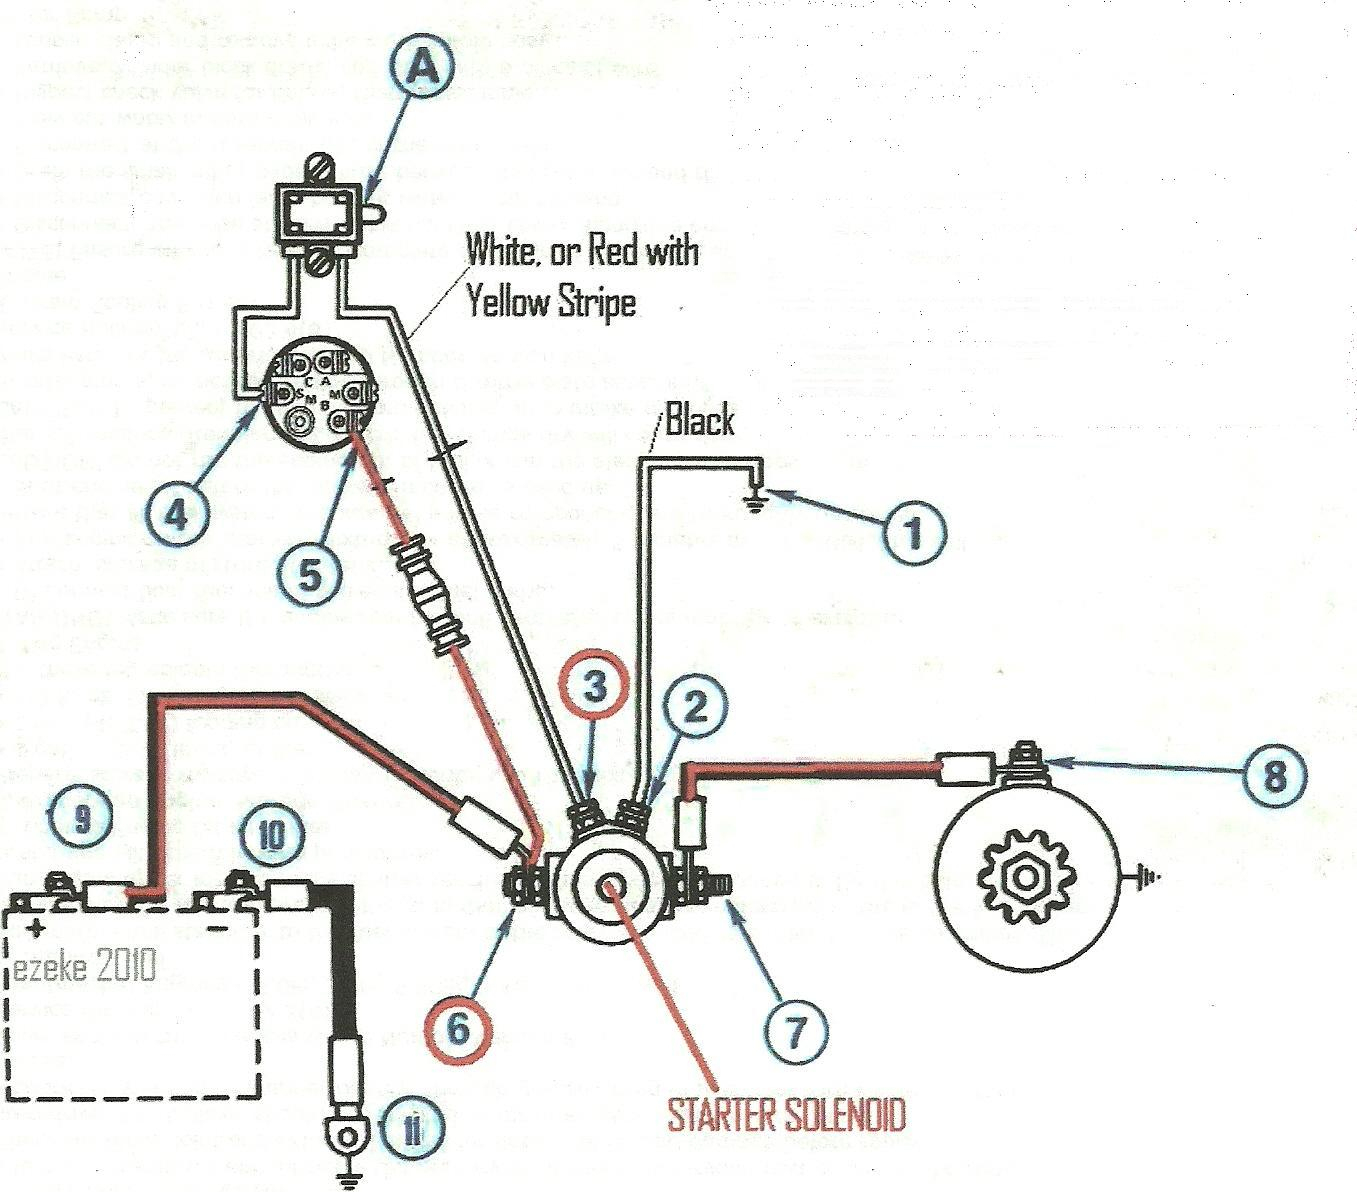 L118 Wiring Diagram | Wiring Library - Starter Solenoid Wiring Diagram Ford